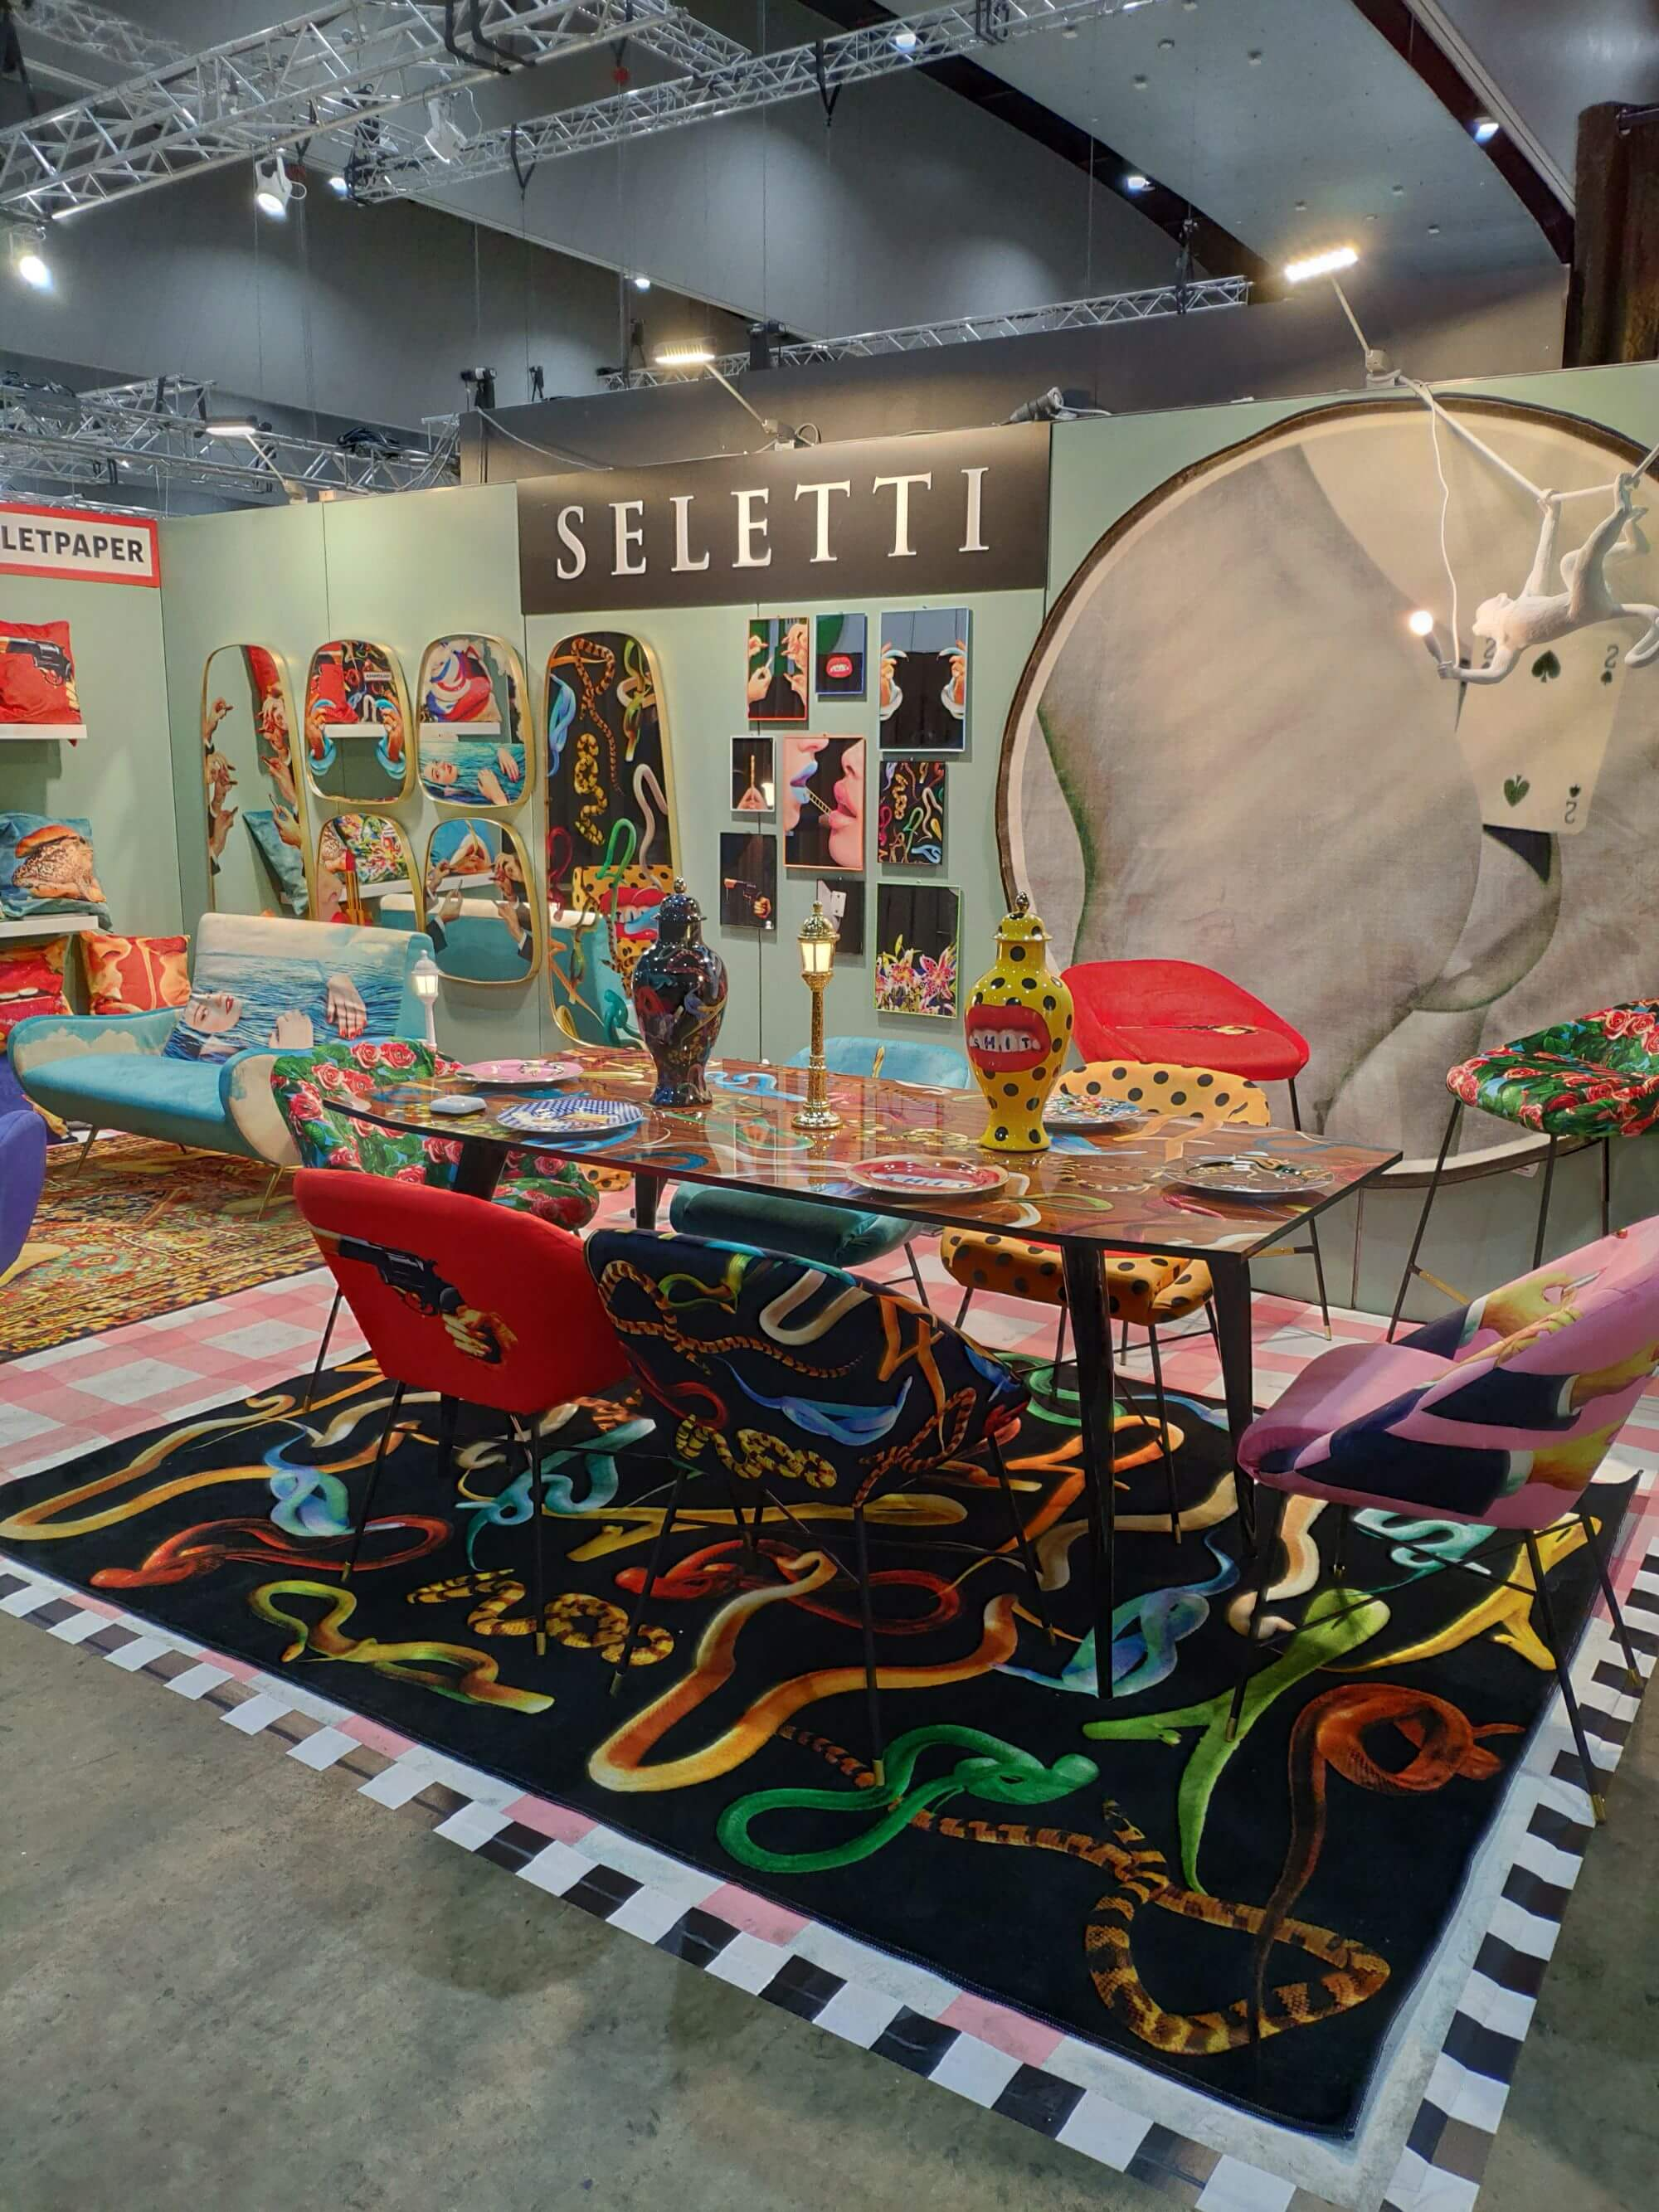 Seletti's colourfully camp stand